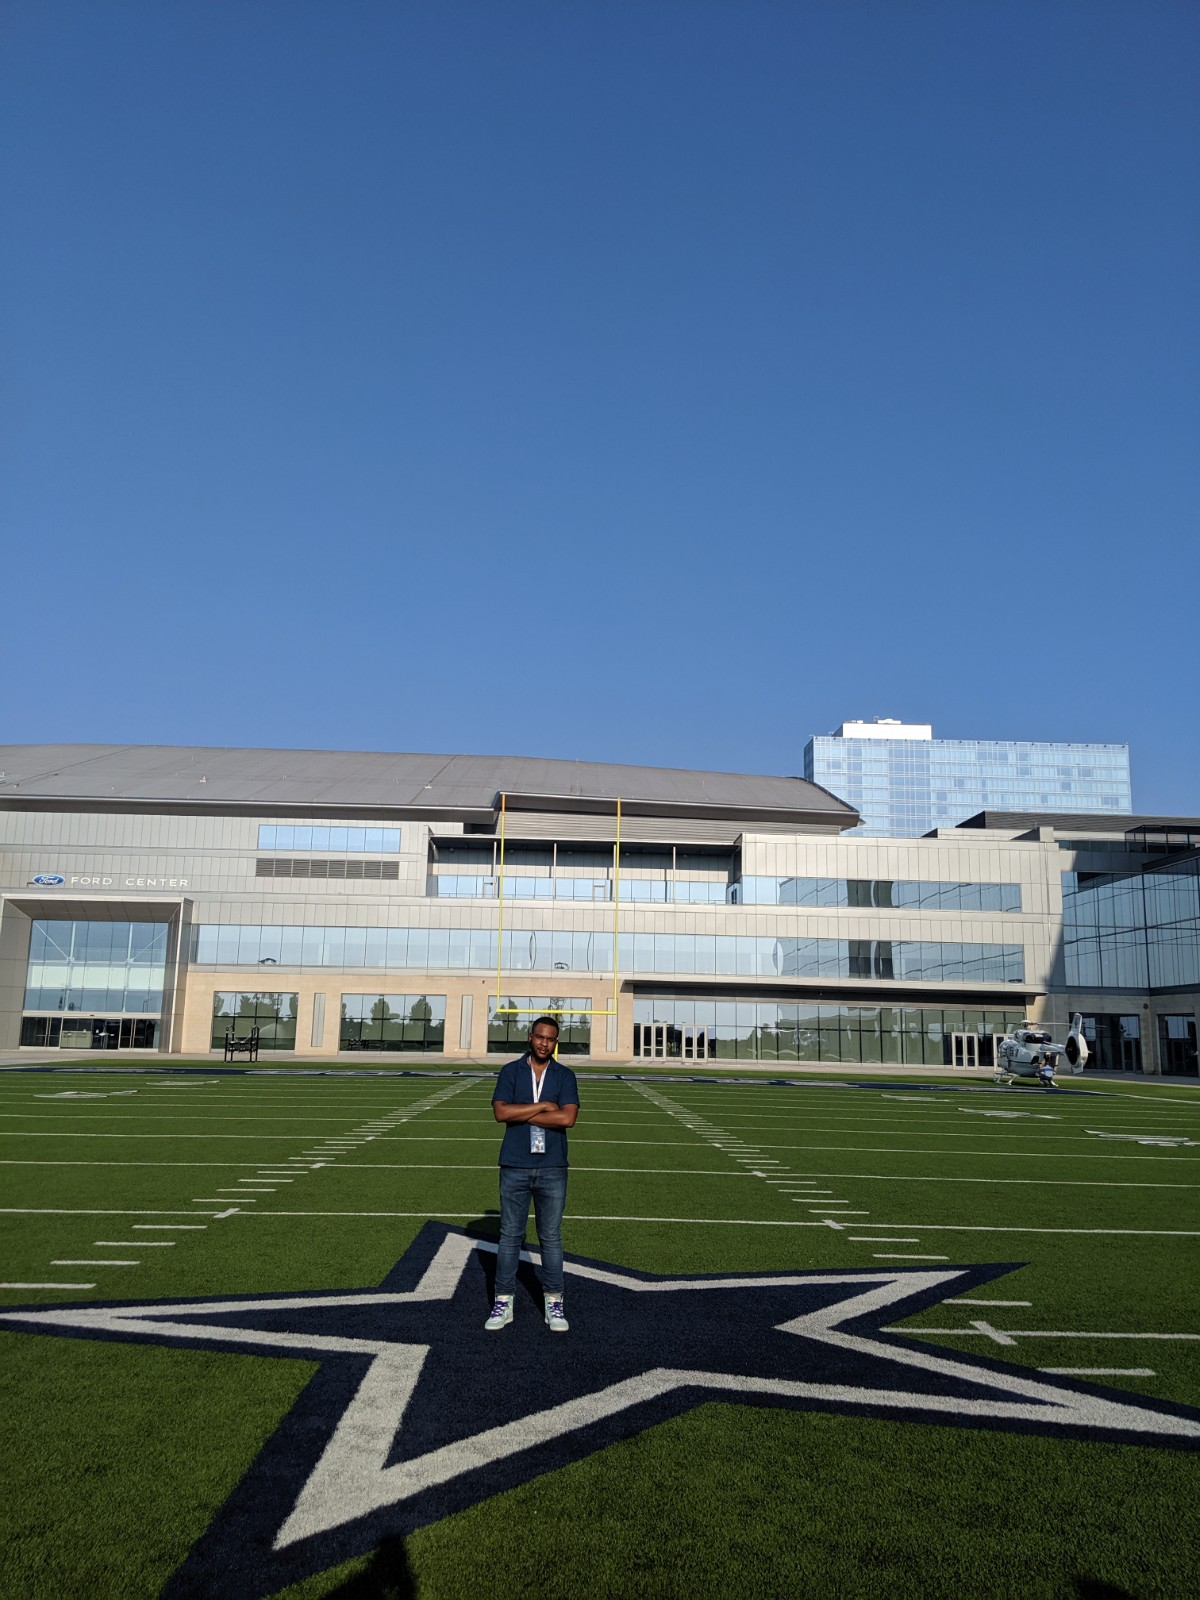 Visiting The Star: Dallas Cowboys Training Facility & HQ